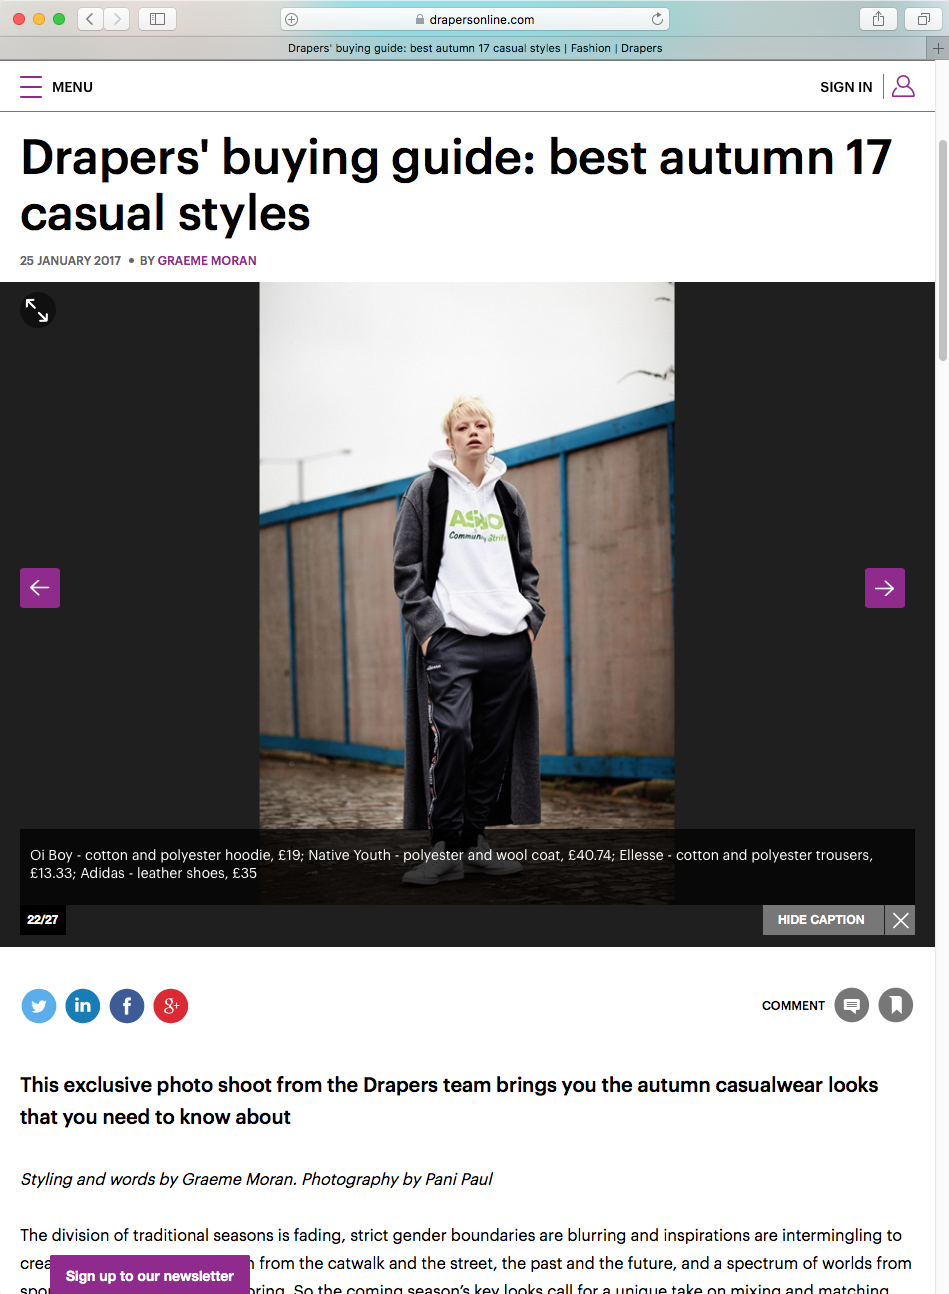 OIBOY ASBO hoodie included within the DraperS magaziNE ONLINE article ' Drapers buying guide: best autumn 17 casual style '.